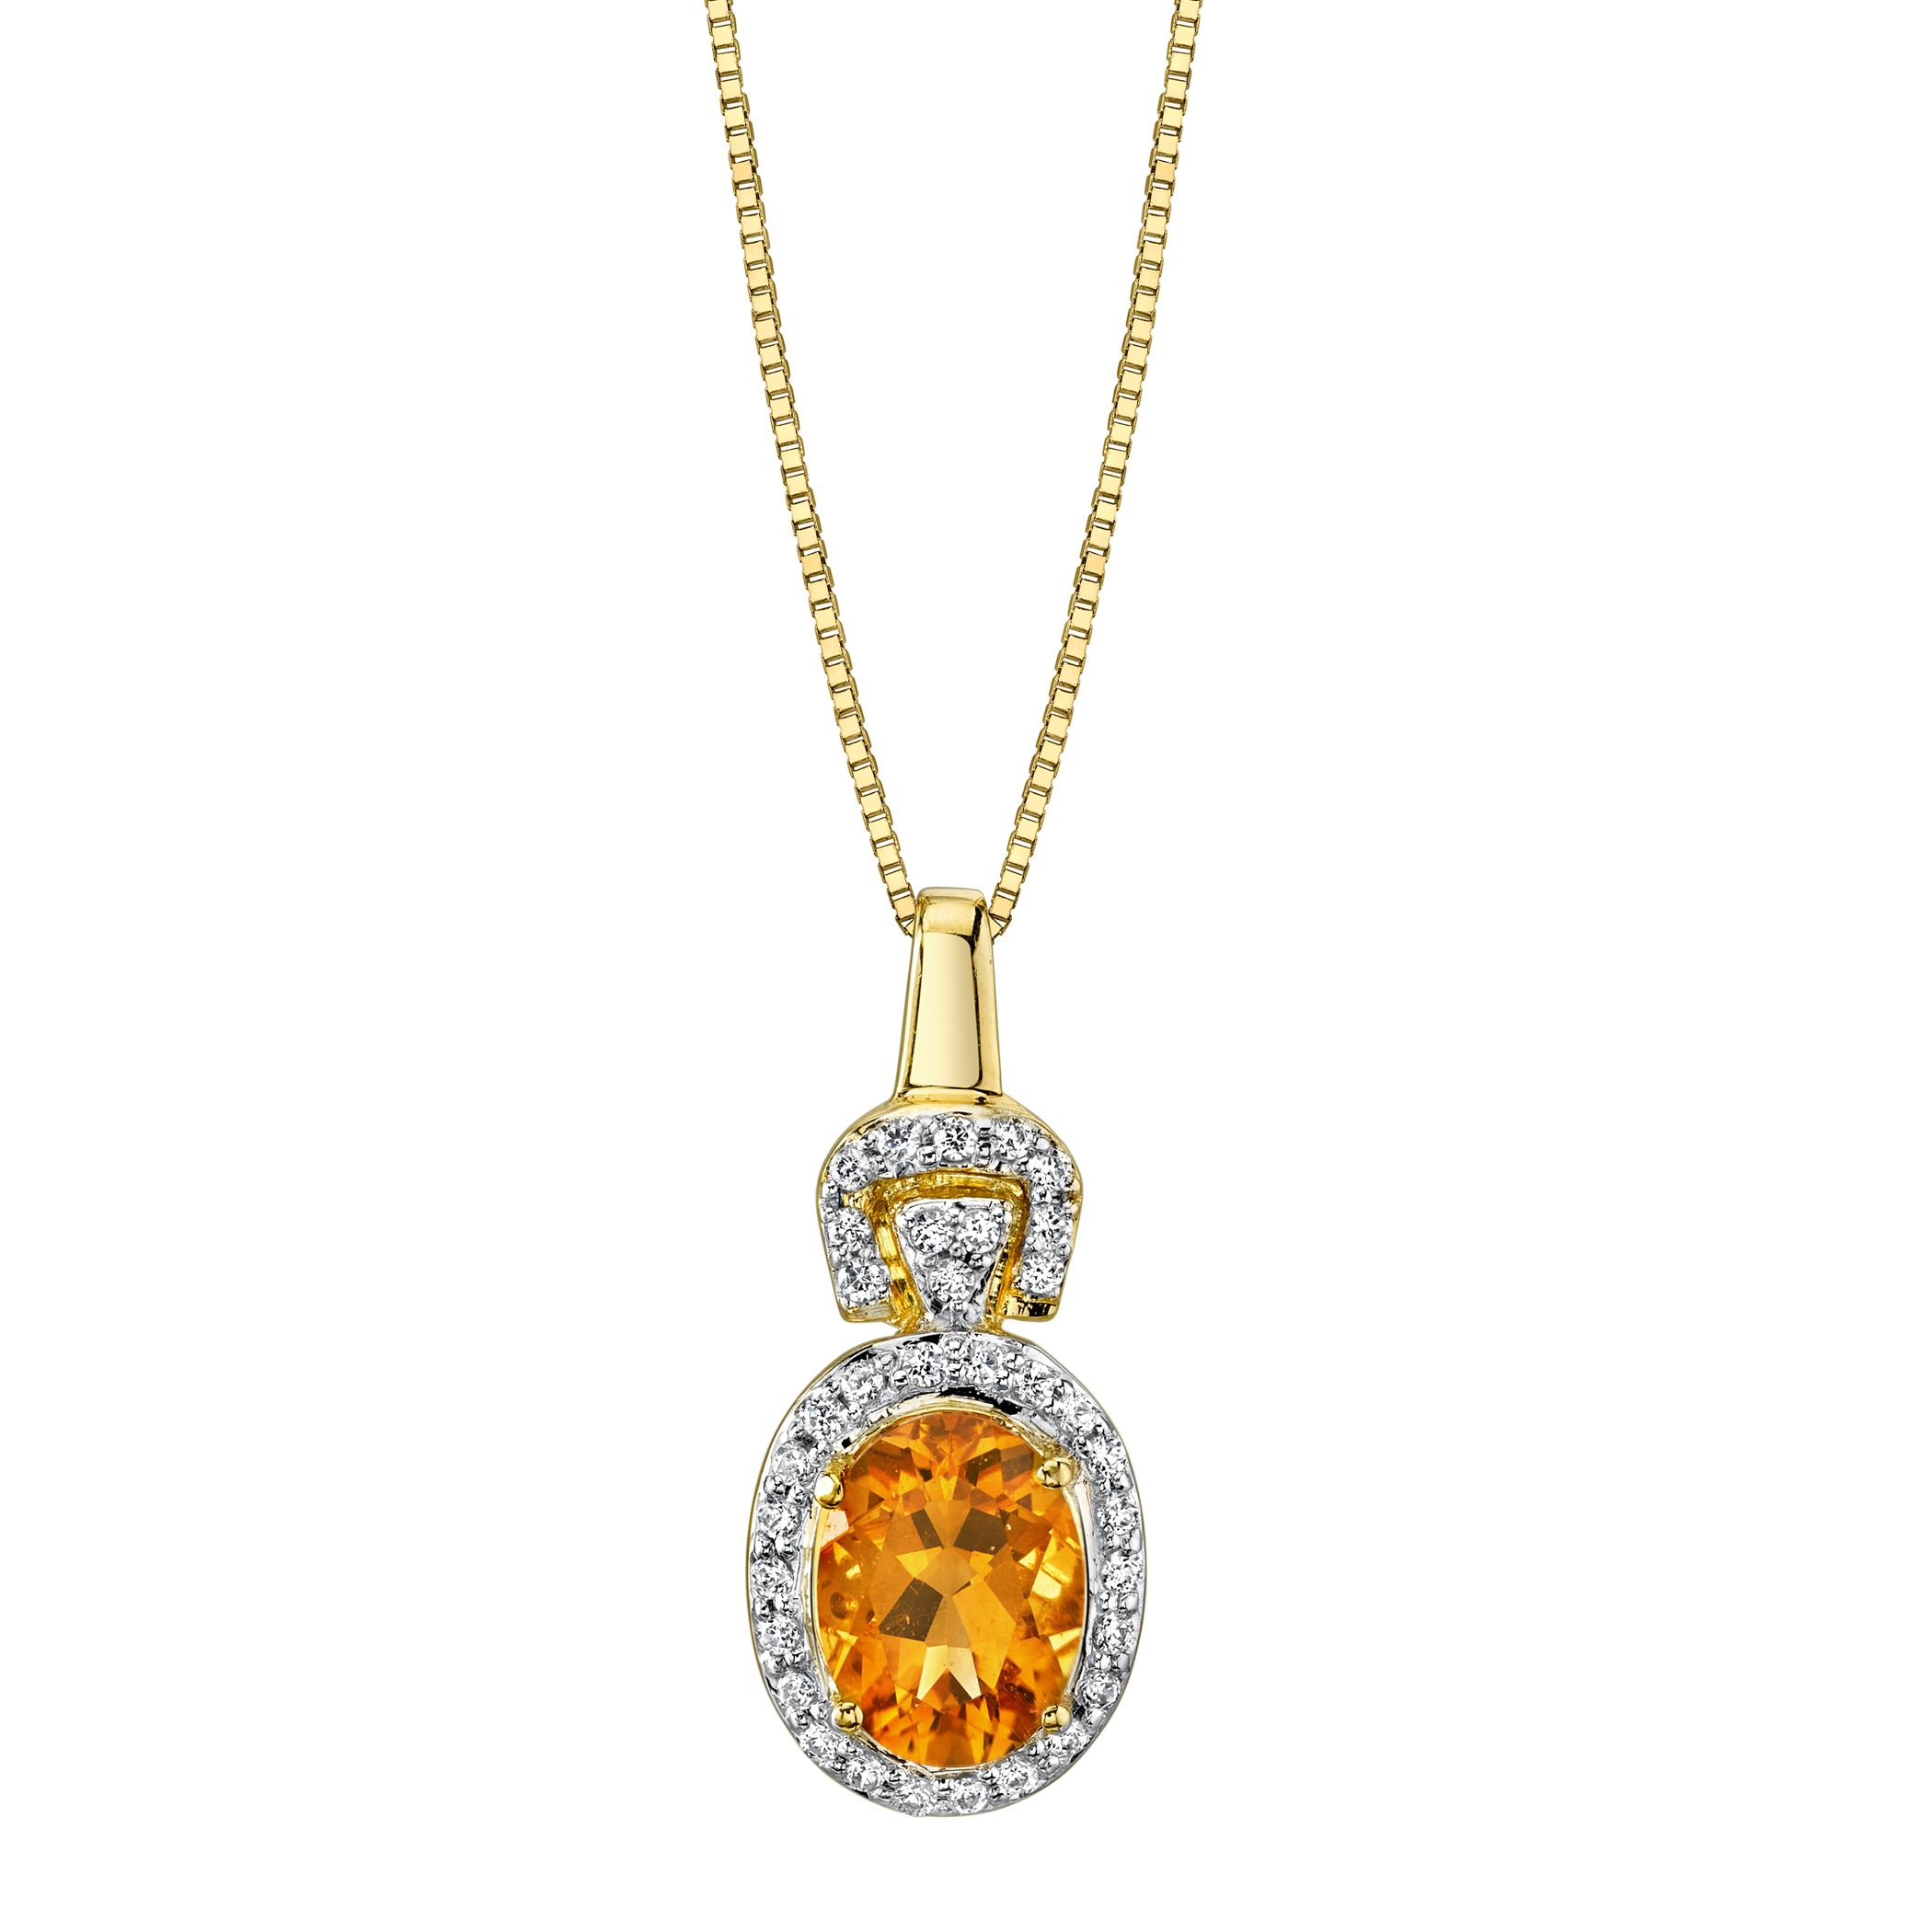 pin necklace pendant gold sapphire diamond karat citrine and comprising a